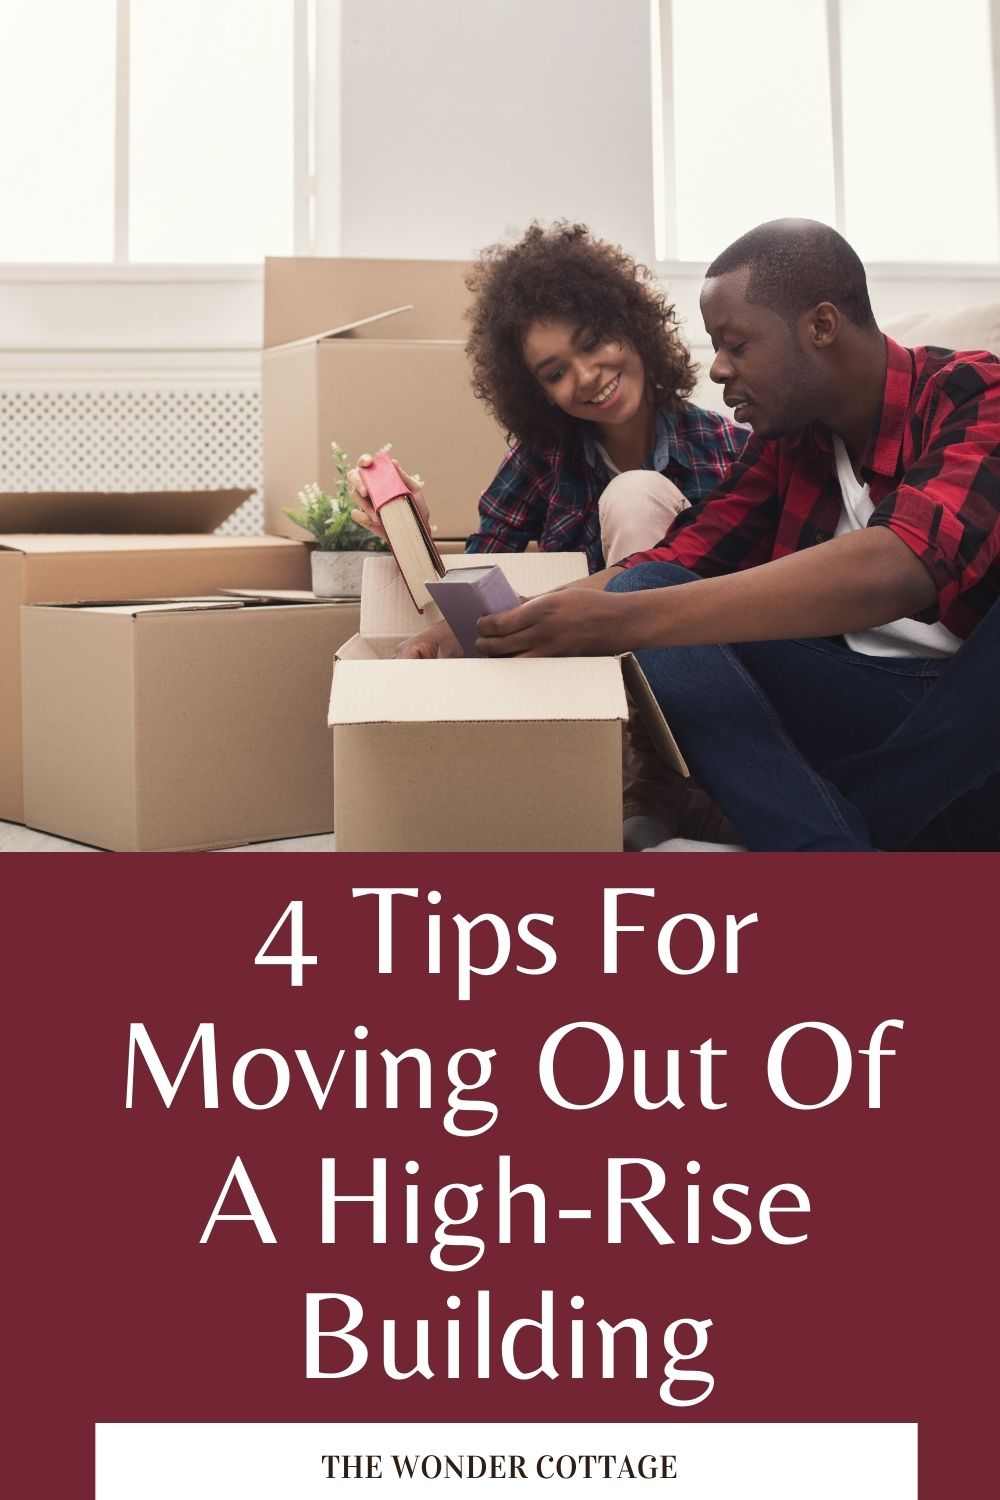 4 tips for moving out of a high-rise building